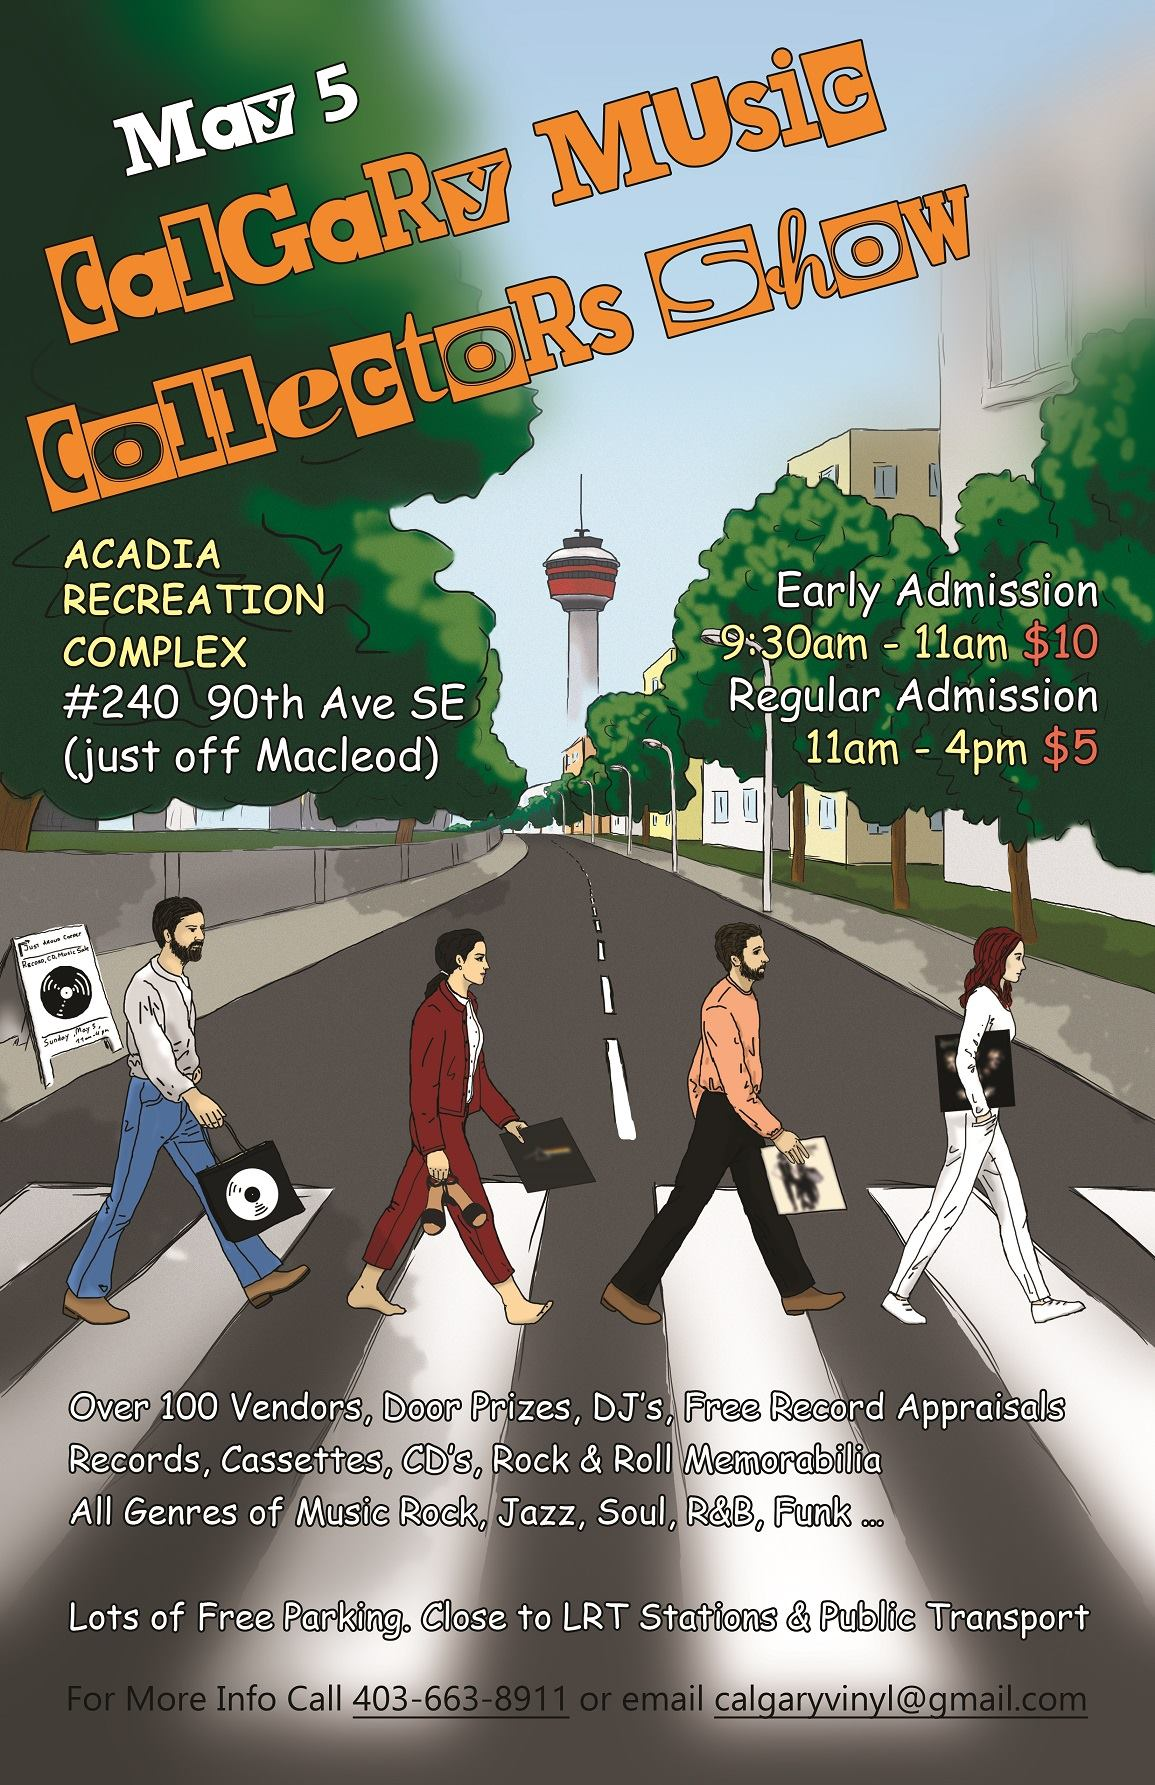 Calgary Music Collectors Show May 5 2019